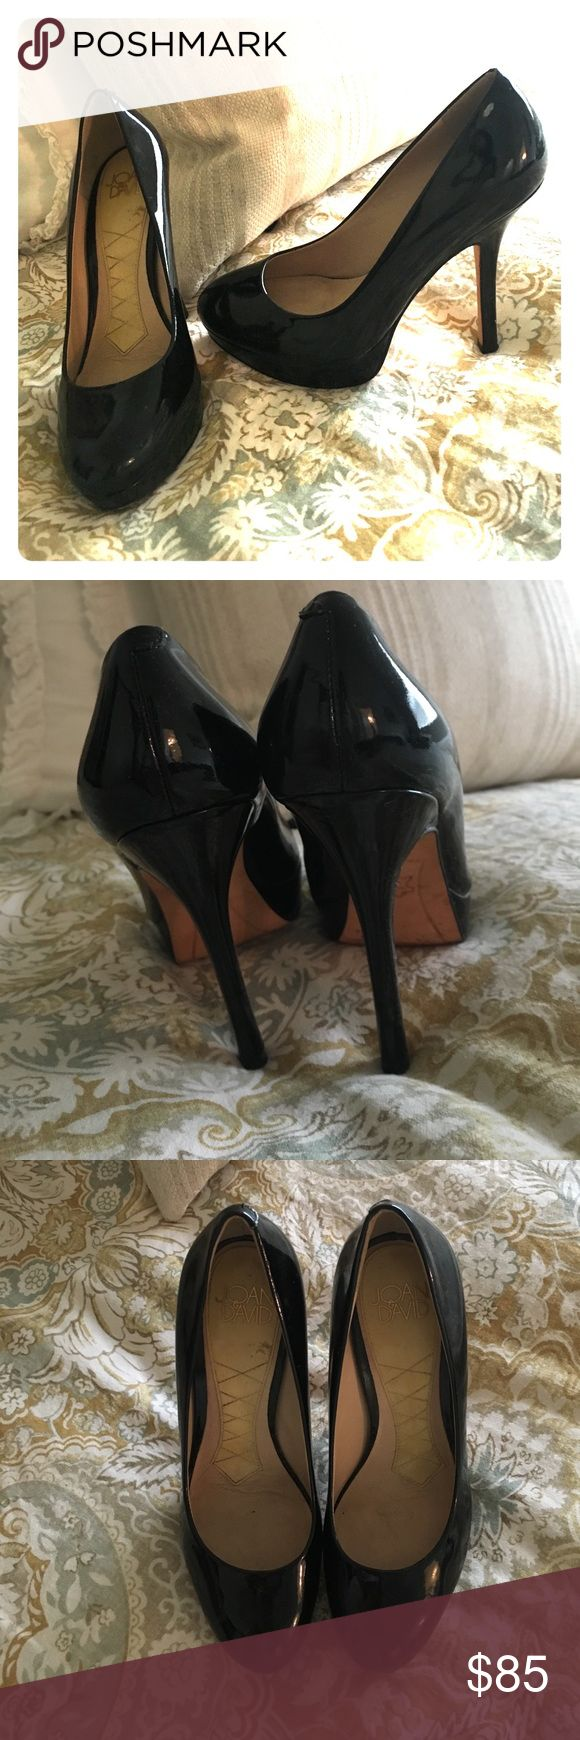 Joan & David pumps Pre-owned pumps. In super good condition. Literally like new! Joan & David Shoes Heels